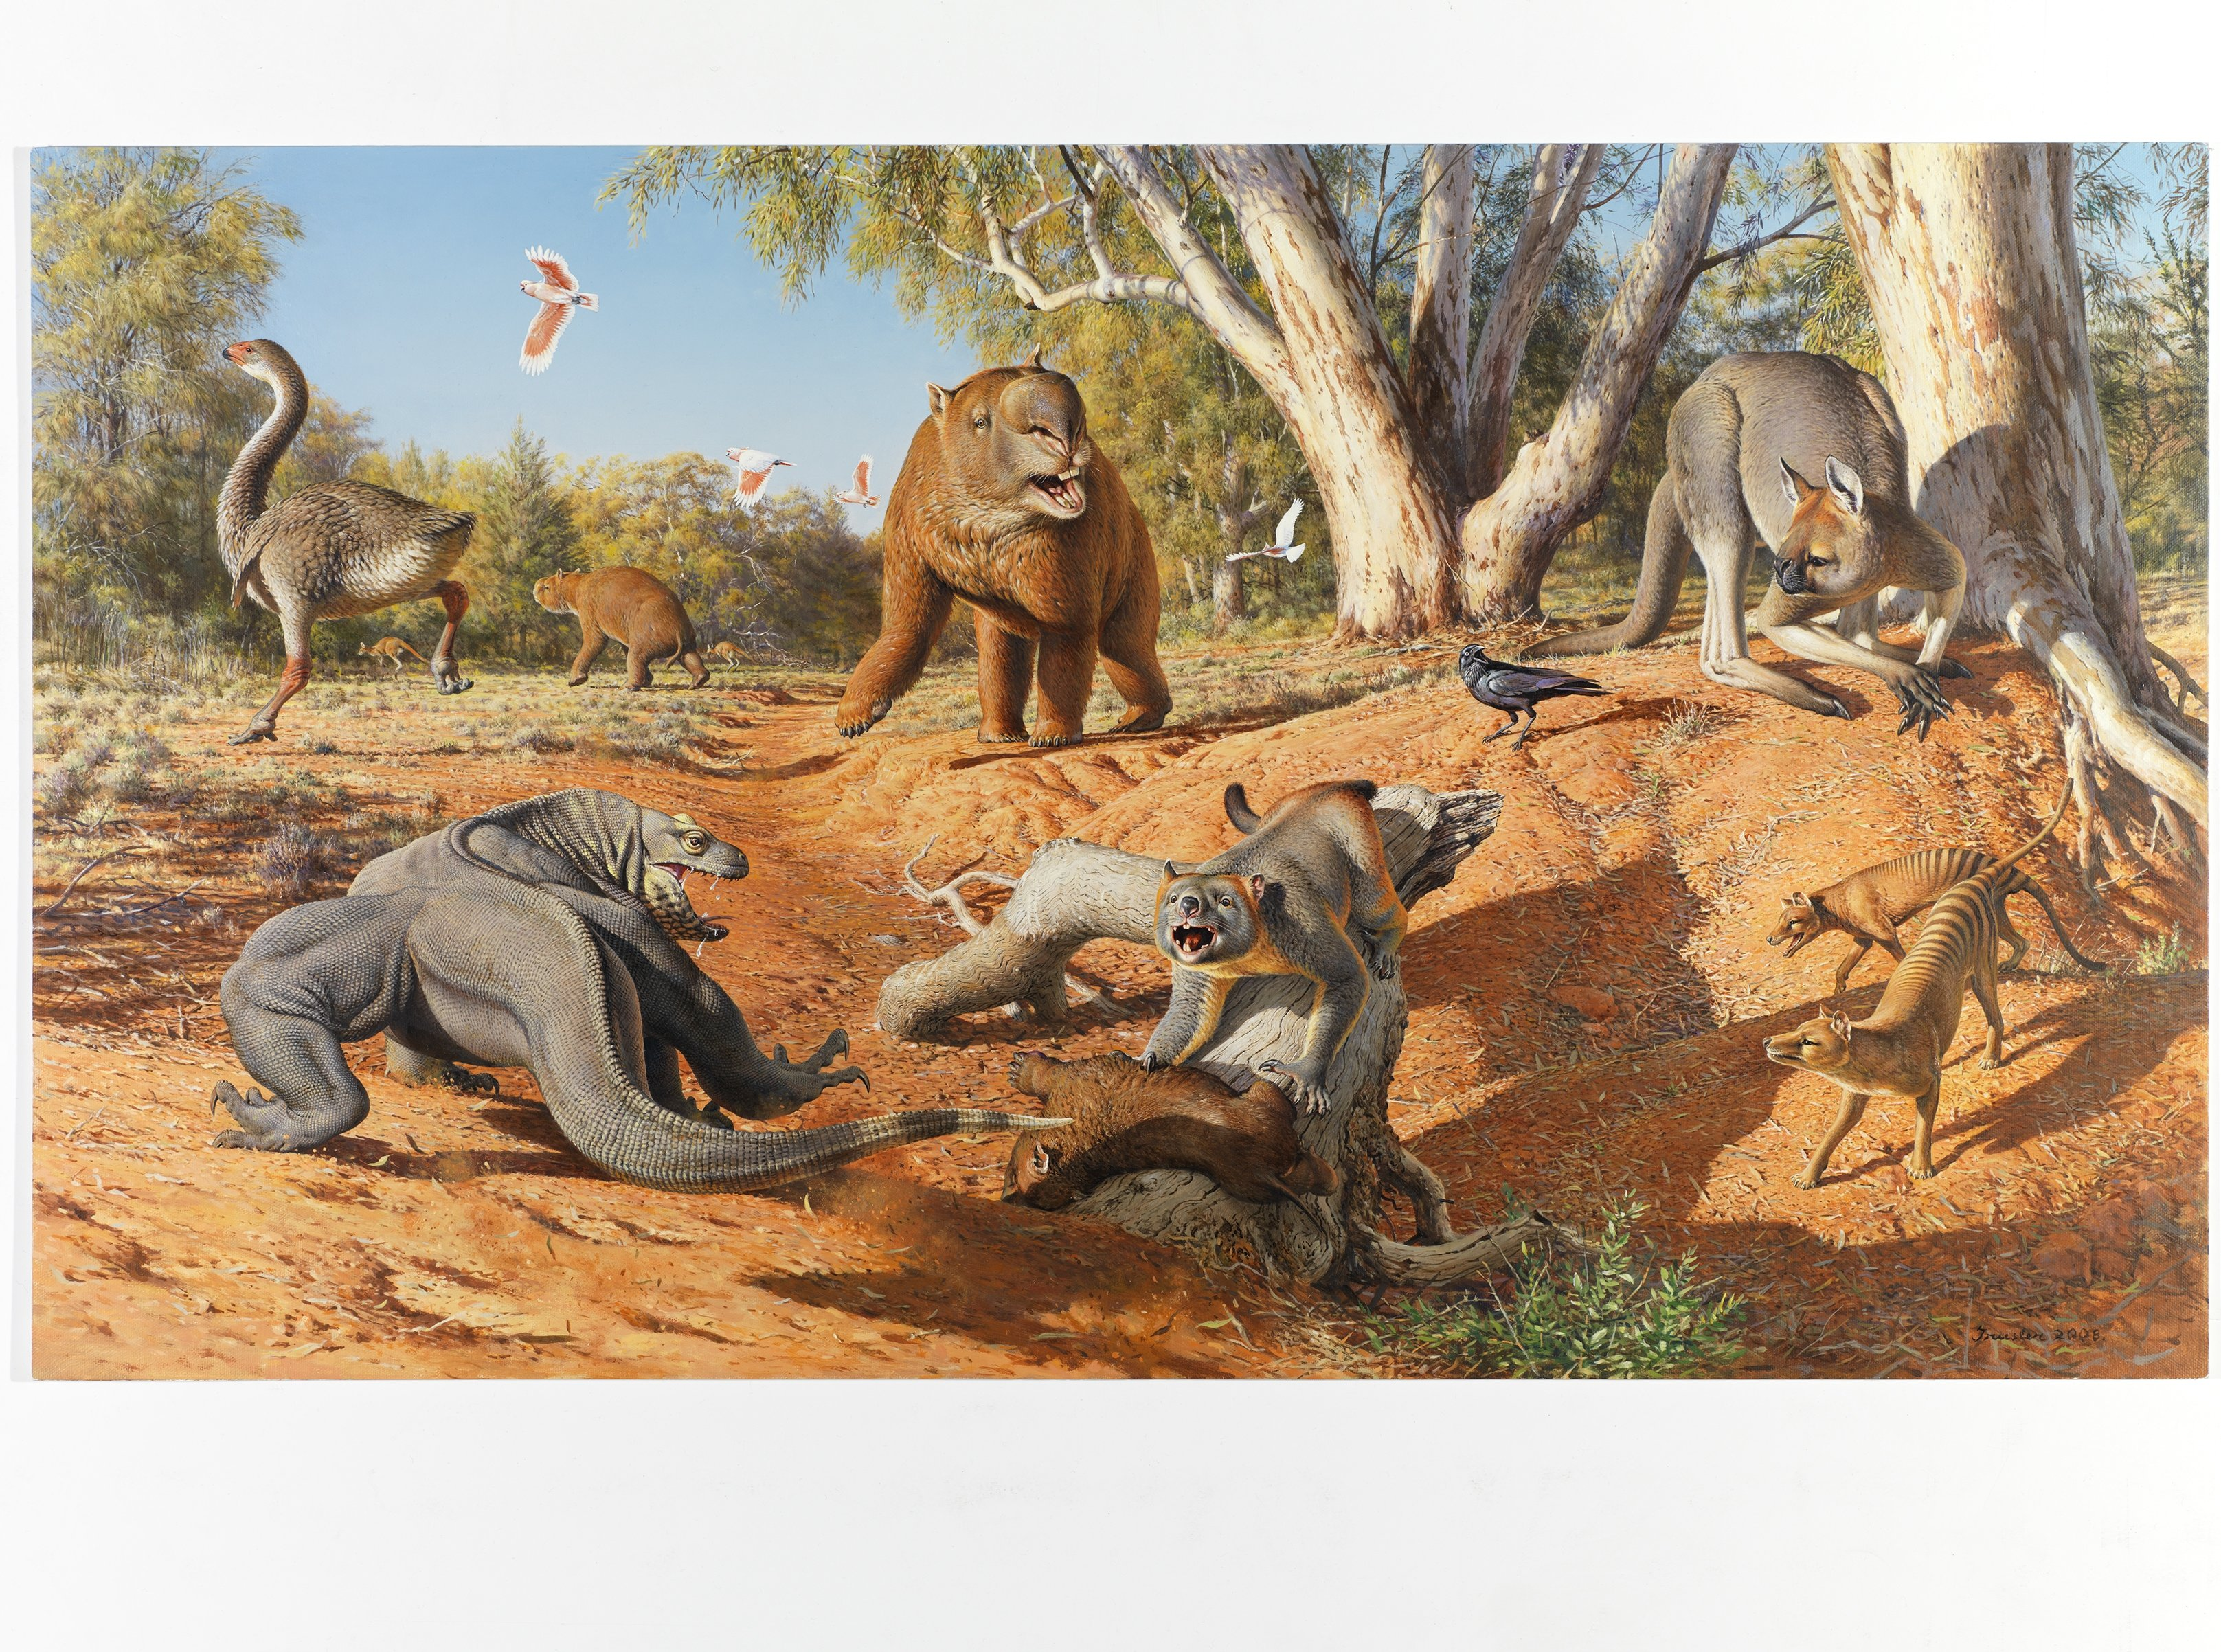 a research on mega fauna extinction in australia Big impact the extinction of australia's megafauna led to major ecological changes and helped create the vegetation we recognise today, new research has found australia's megafauna included giant.